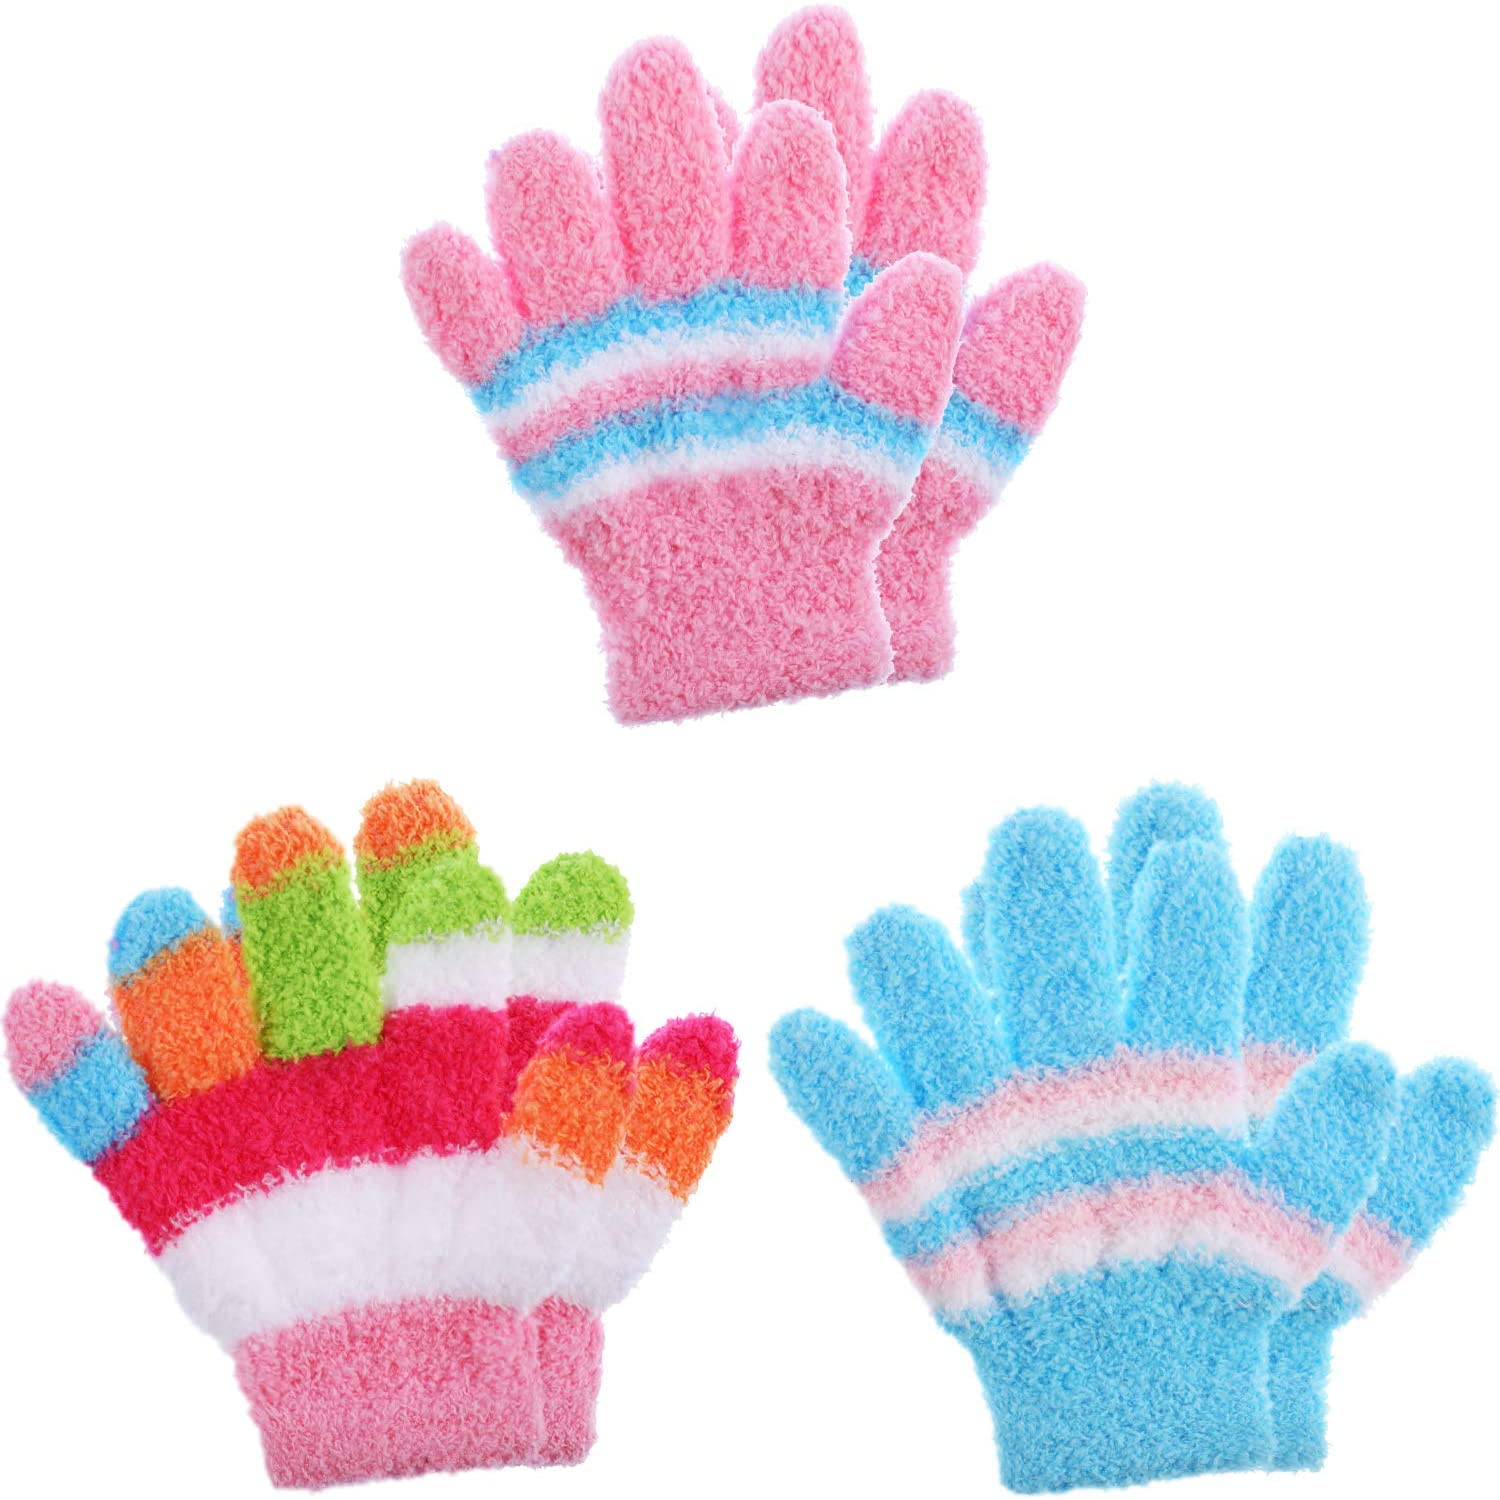 Boao 3 Pairs Kids Gloves Full Finger Mittens Winter Knitted Gloves for 1-5 Years Little Boys and Girls Supplies